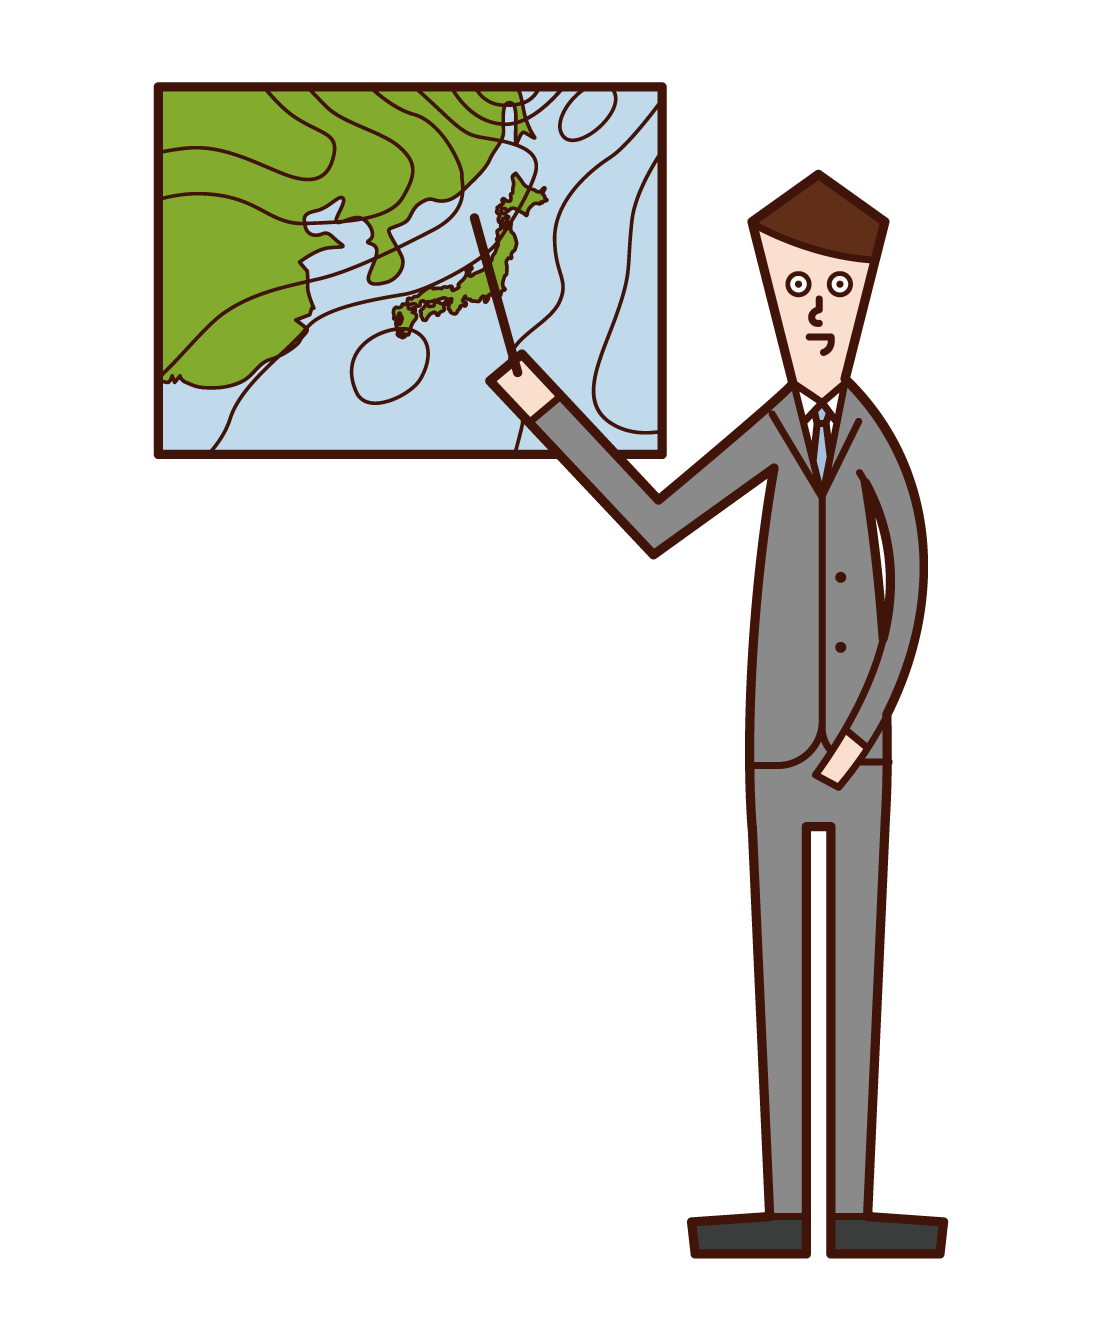 Illustration of a weather forecaster (man)